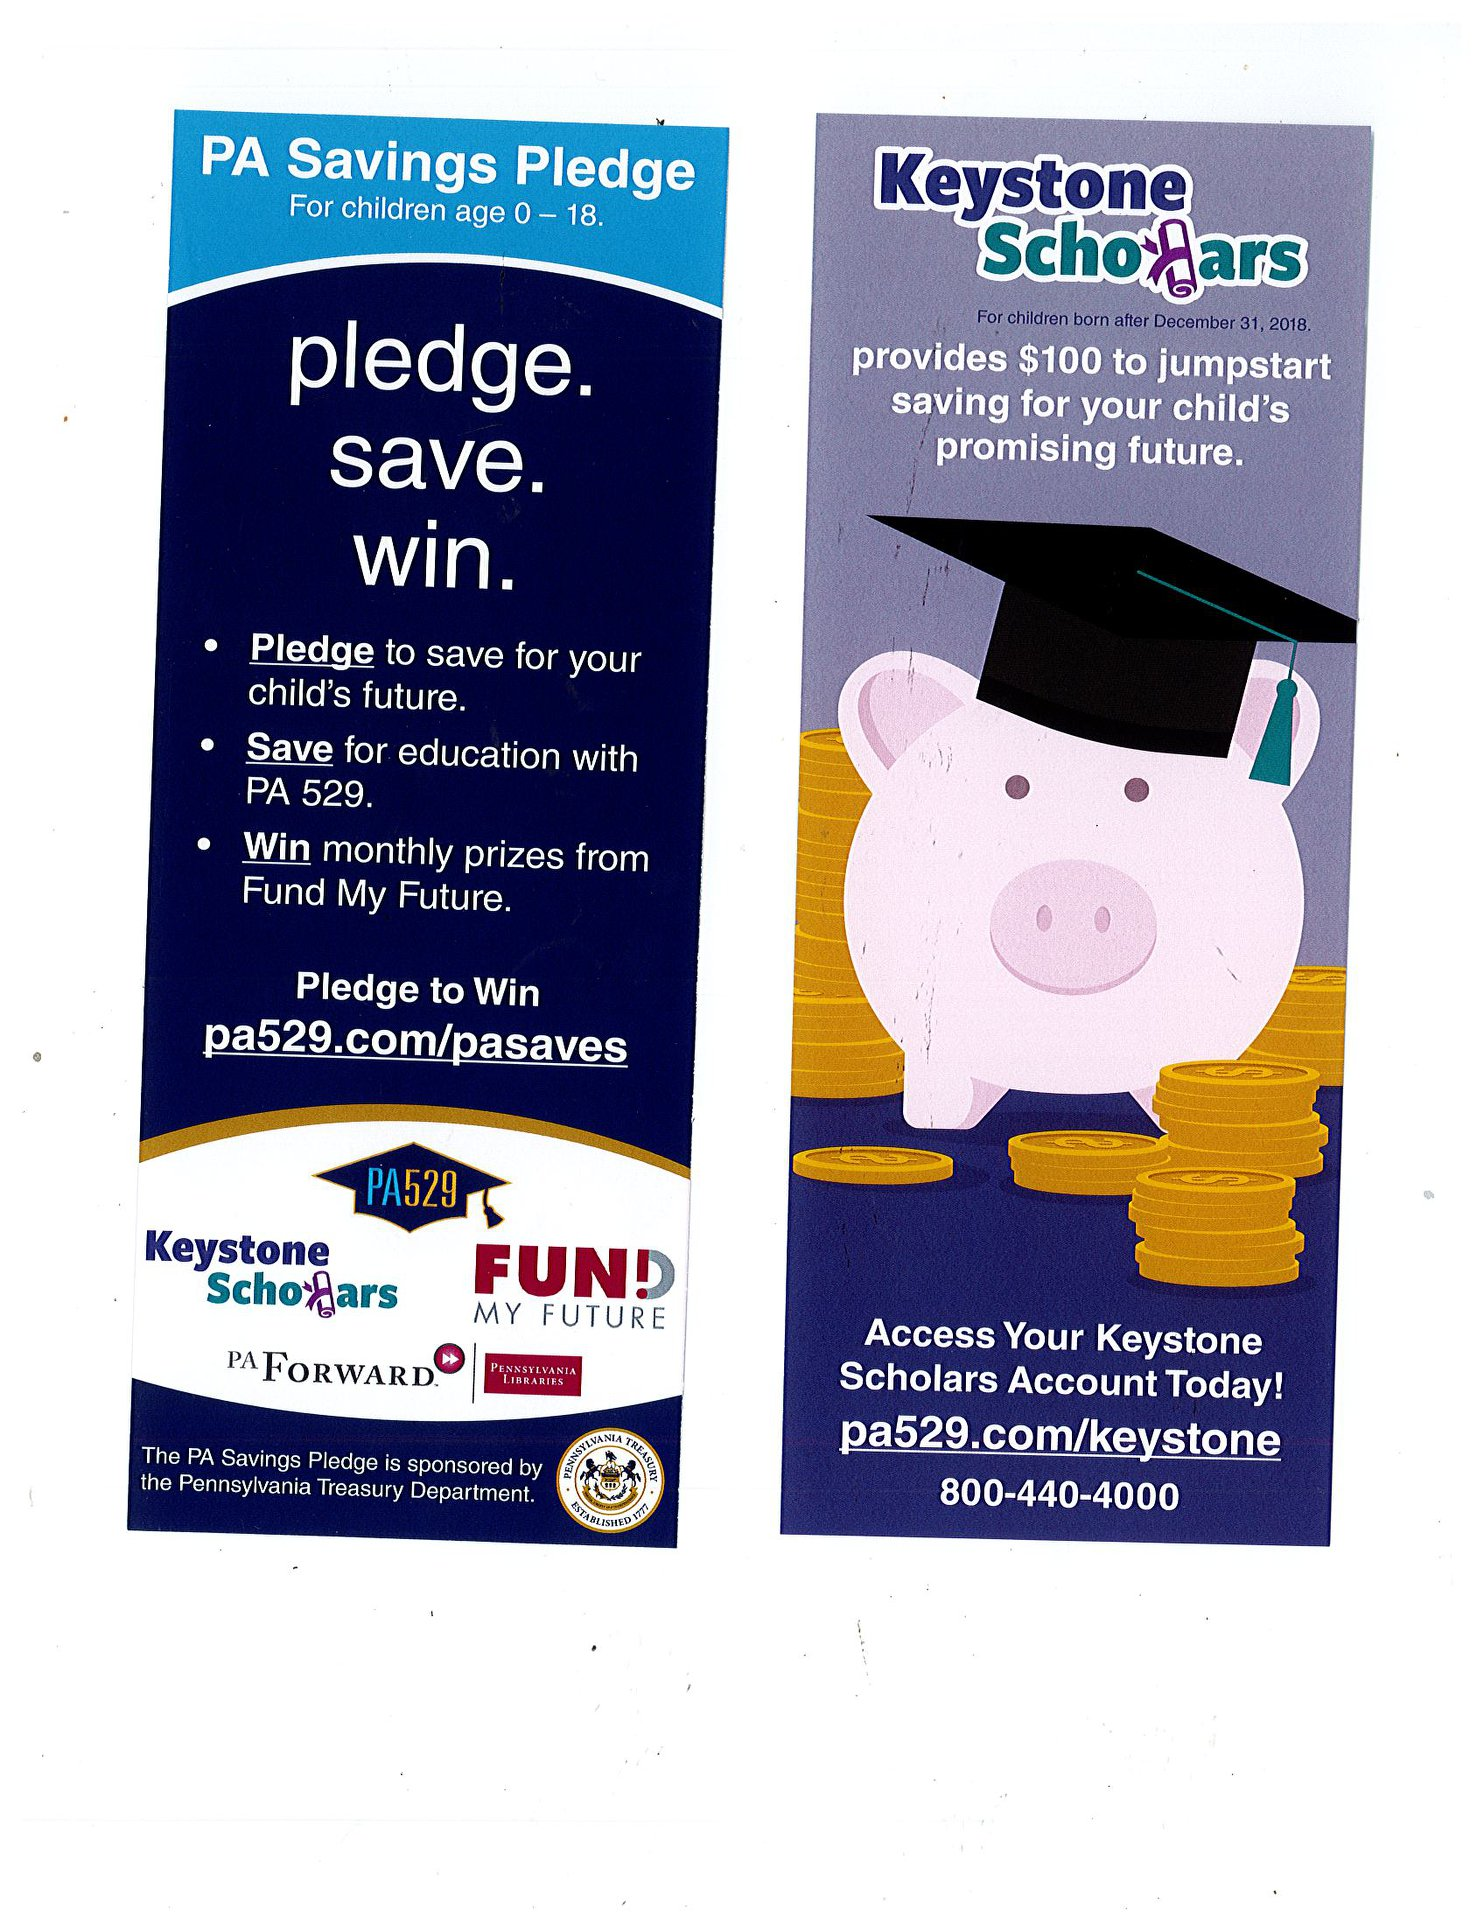 What a great way to help your child with college expenses!